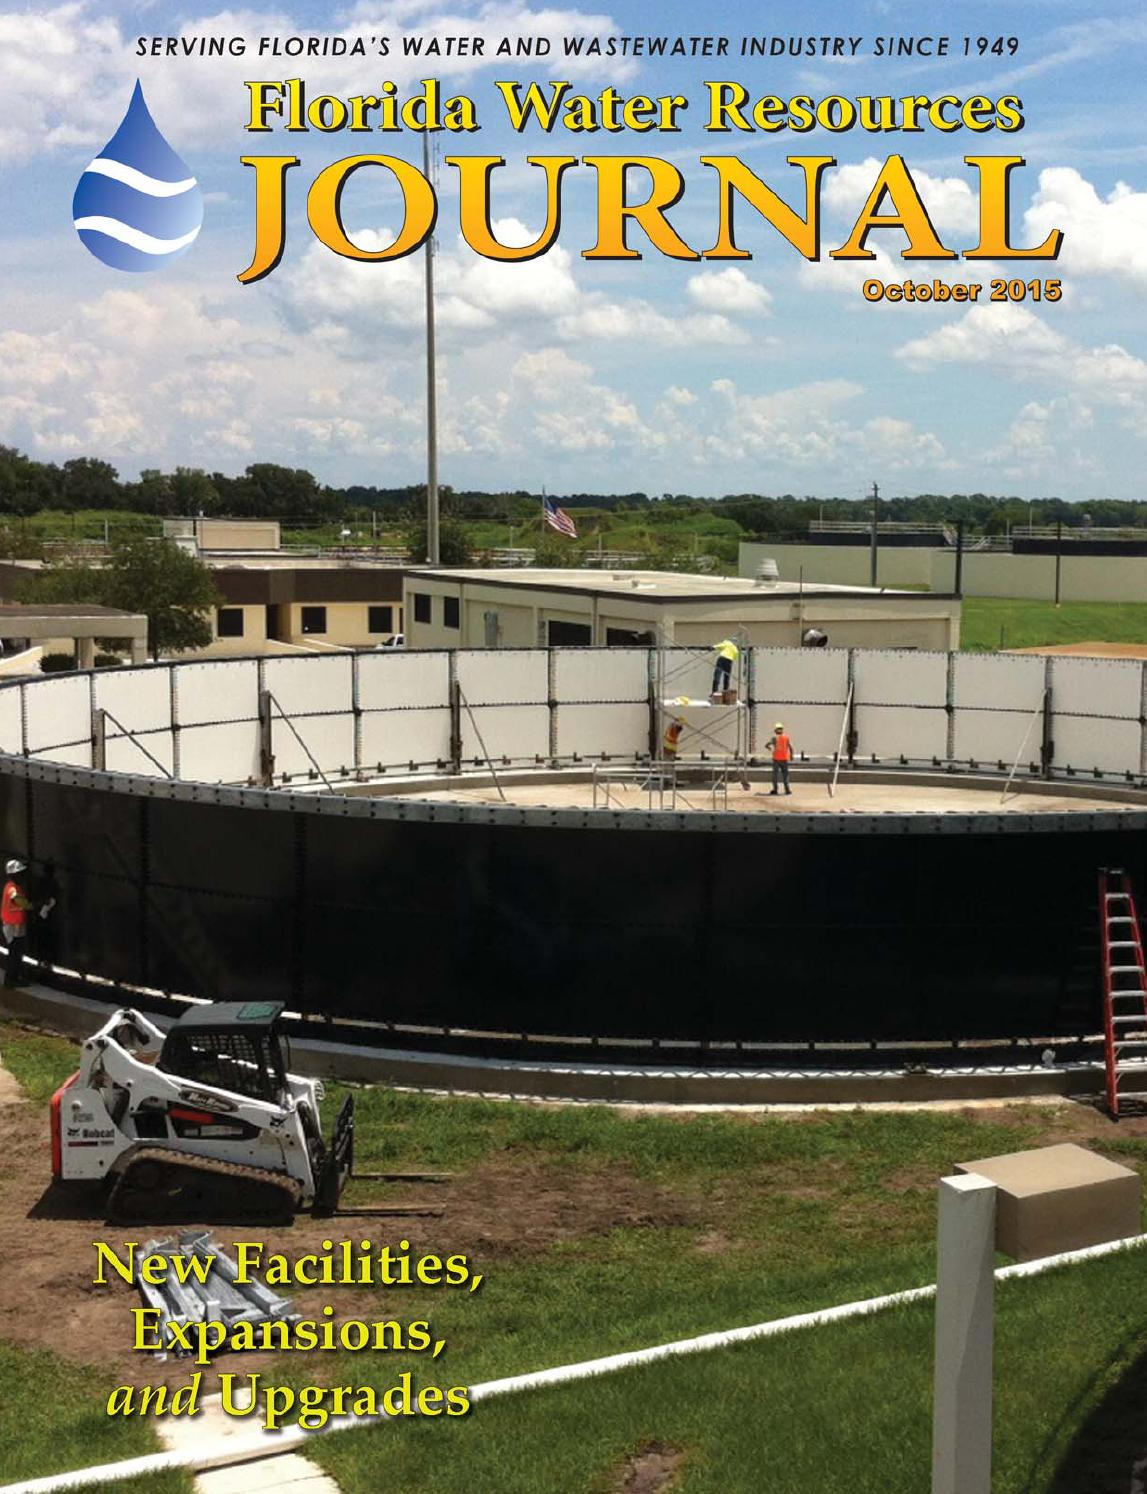 Florida Water Resources Journal October 2015 By Florida Water